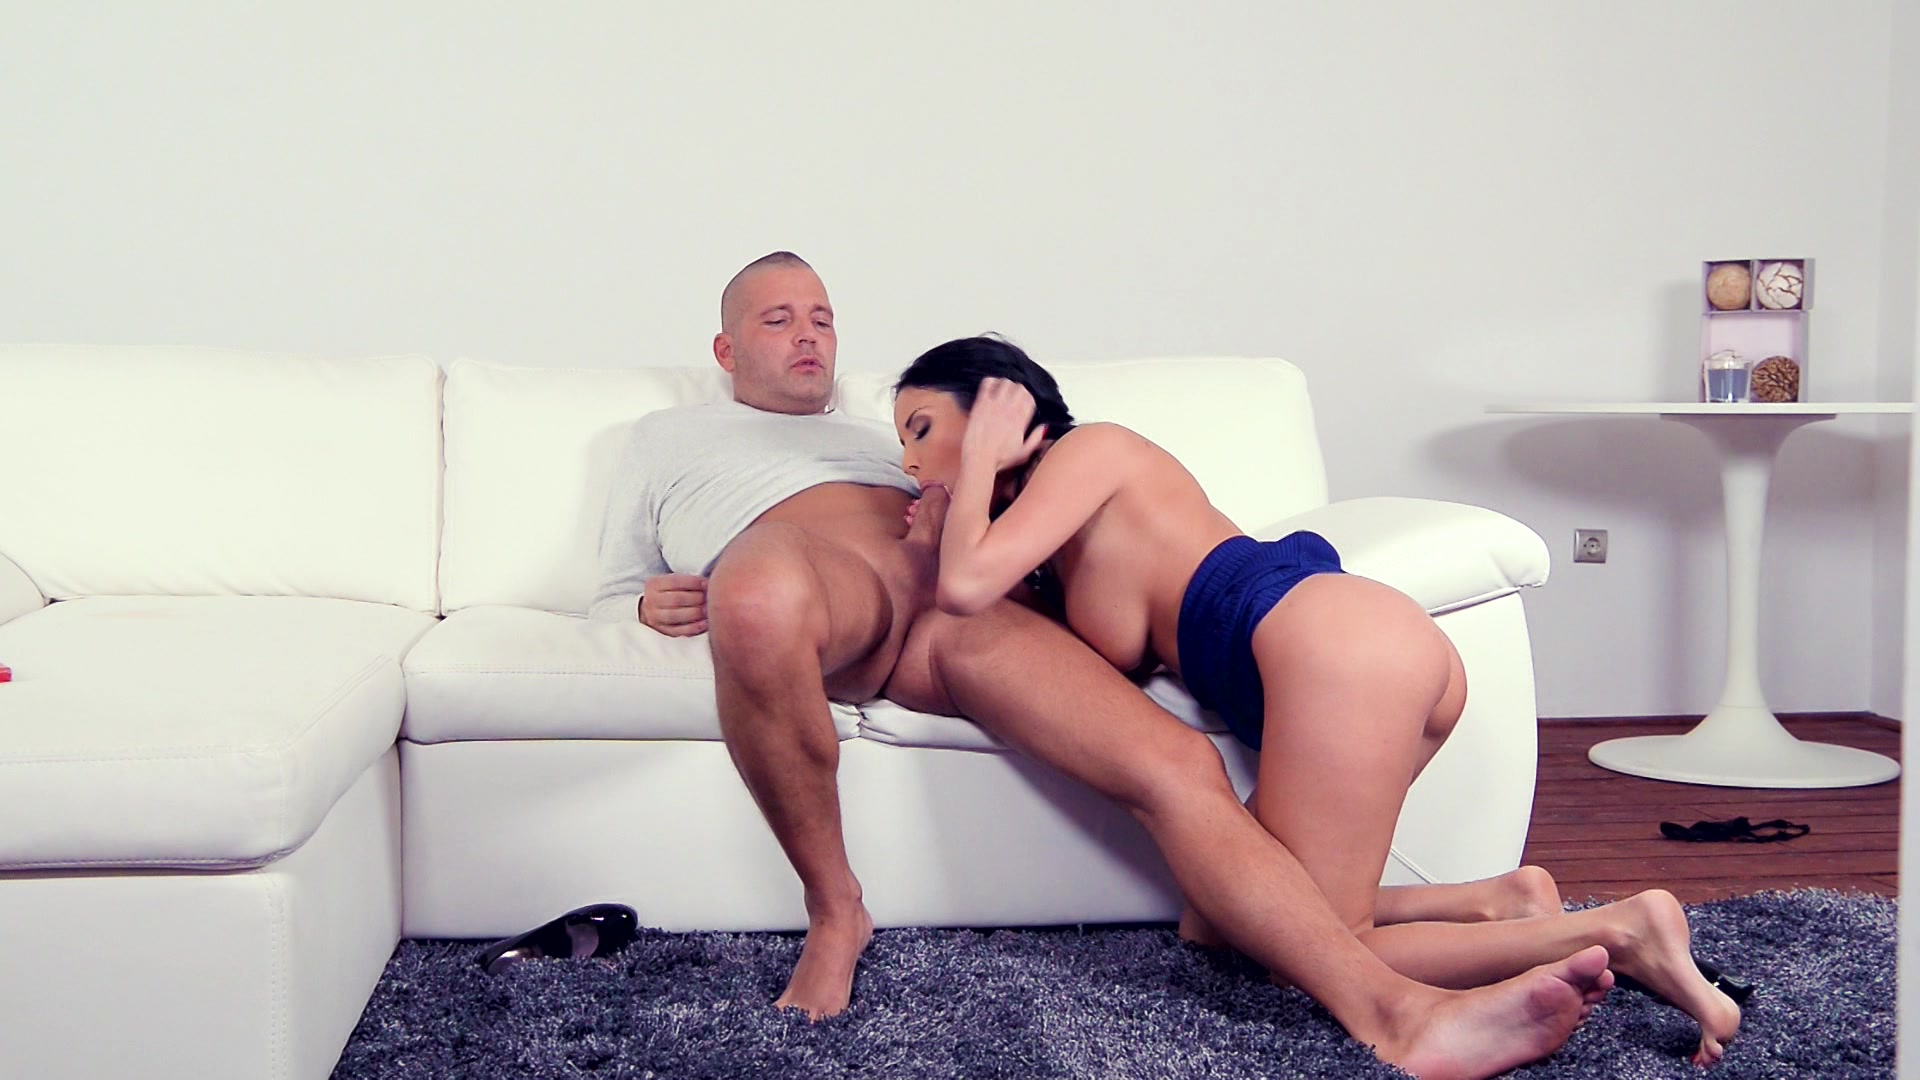 See him solo porn pay per view password torrent zero day pass